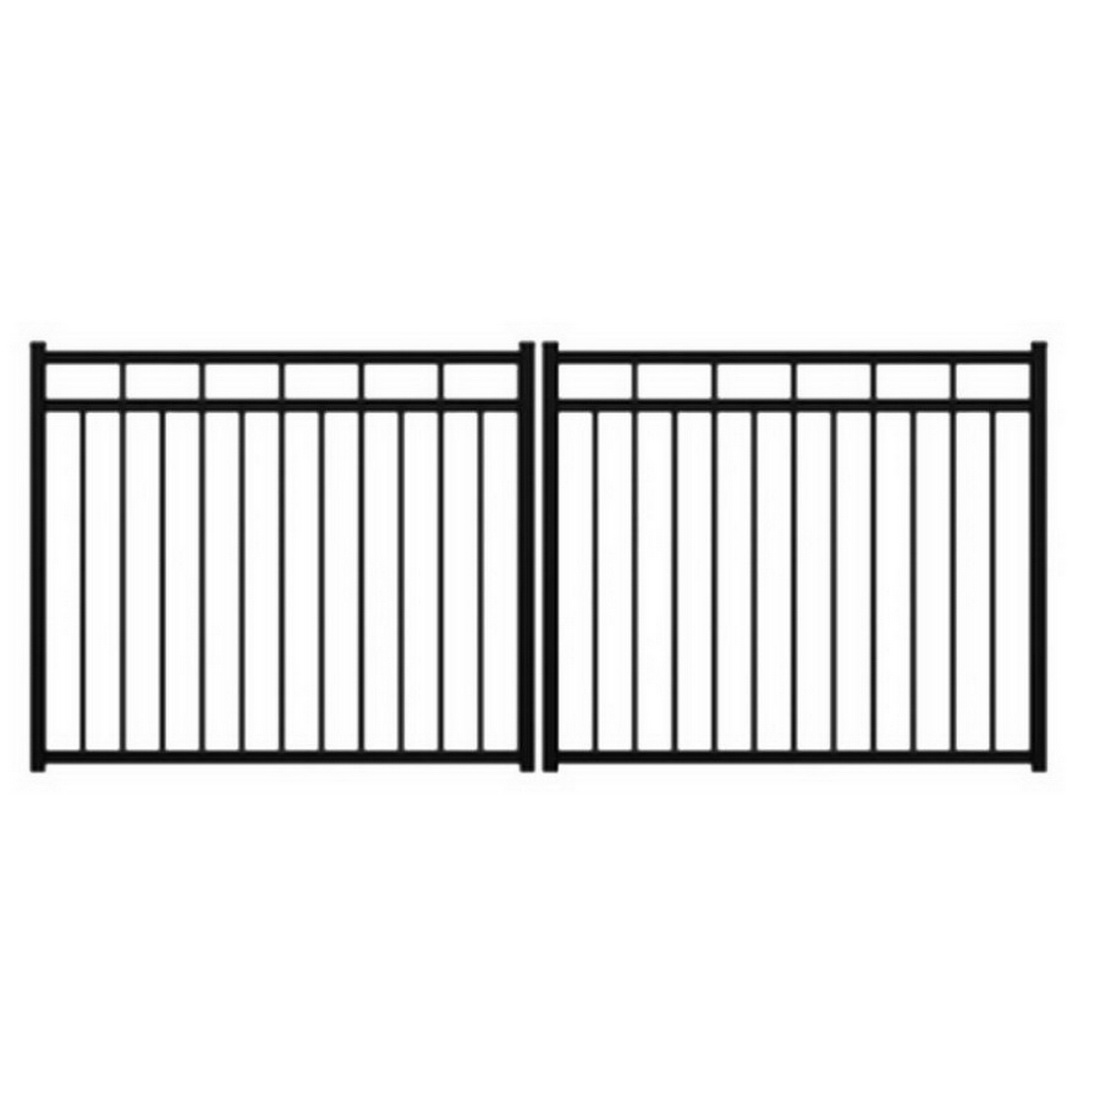 Mansion 1500H Driveway Gate 1500 x 3000mm Powder Coat Aluminum FAMDG1523